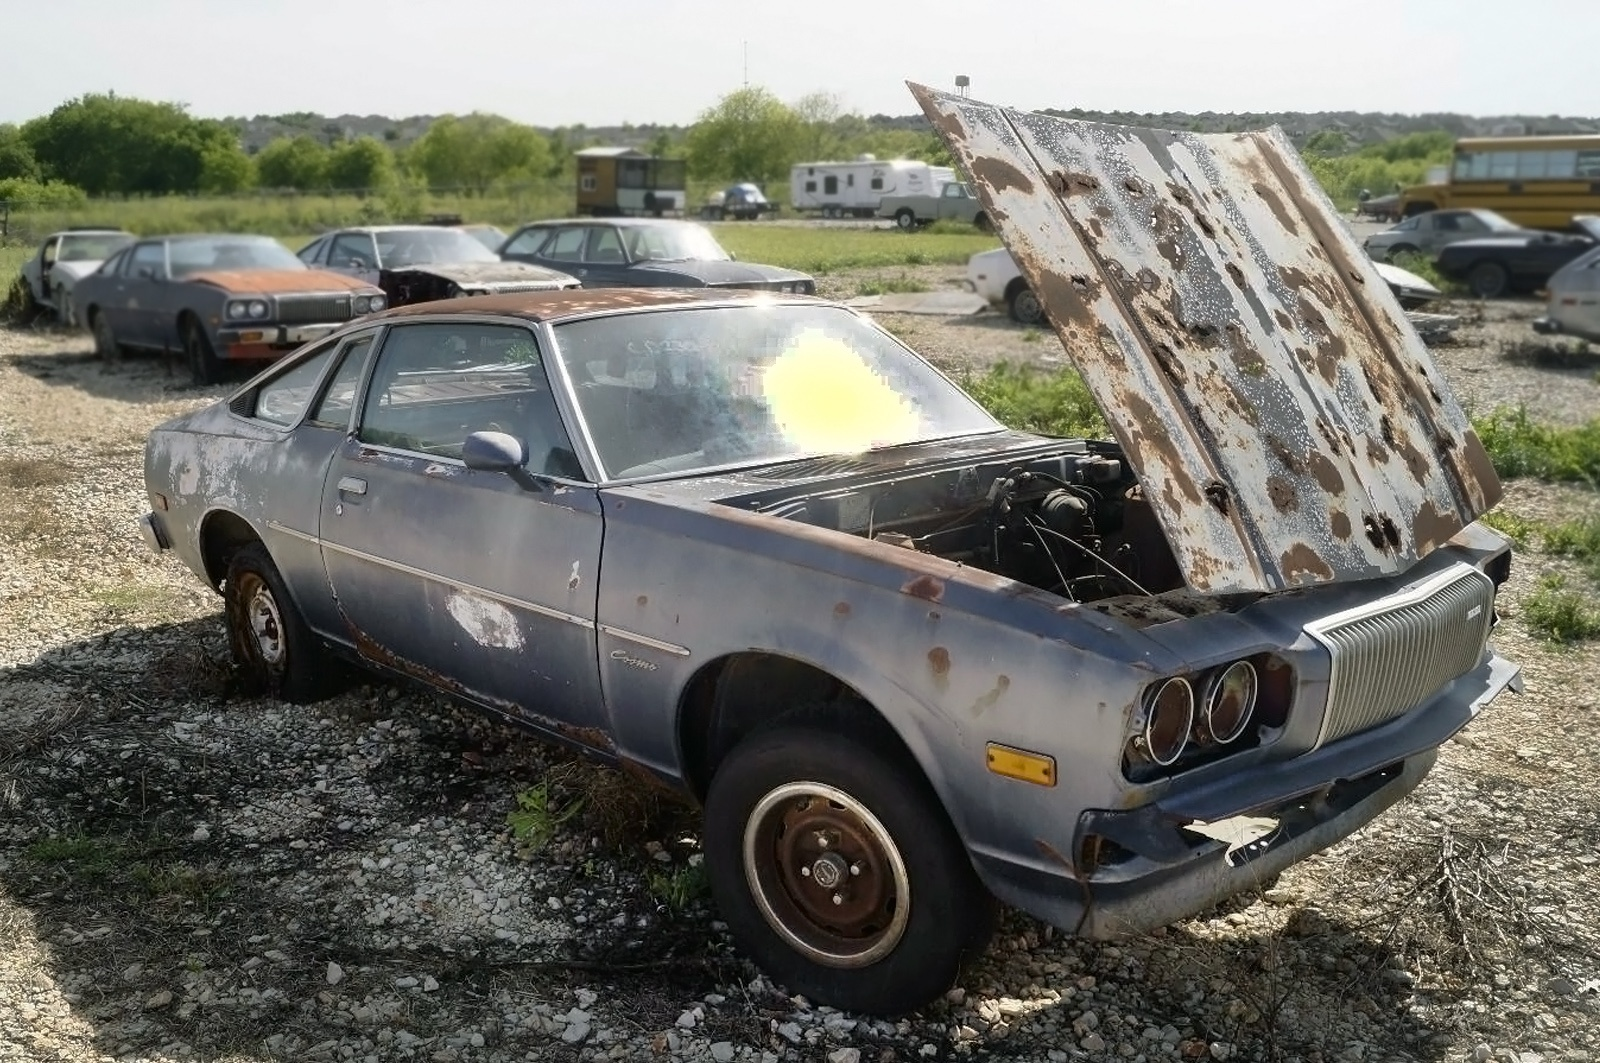 Mazda Cosmo Car X besides Mazda Cosmo S Sport For Sale In Greece Resize besides Autowp Ru Mazda Cosmo Sport further Mazda Cosmo Jp together with Mazda Cosmo Rx Factory Stock Tail. on 1976 mazda cosmo